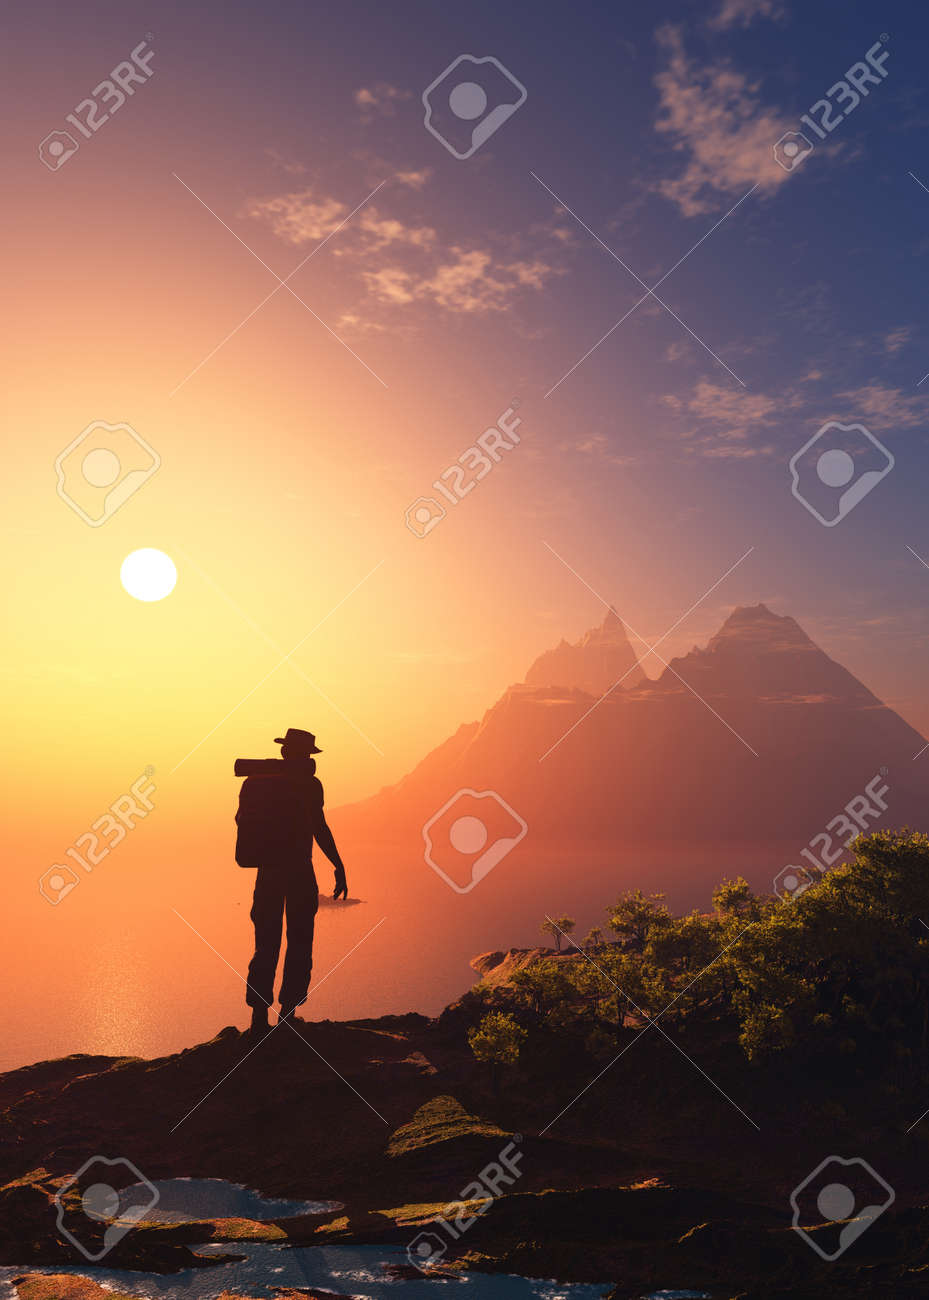 Silhouette Of Man On Nature Background.,3d Render Stock Photo